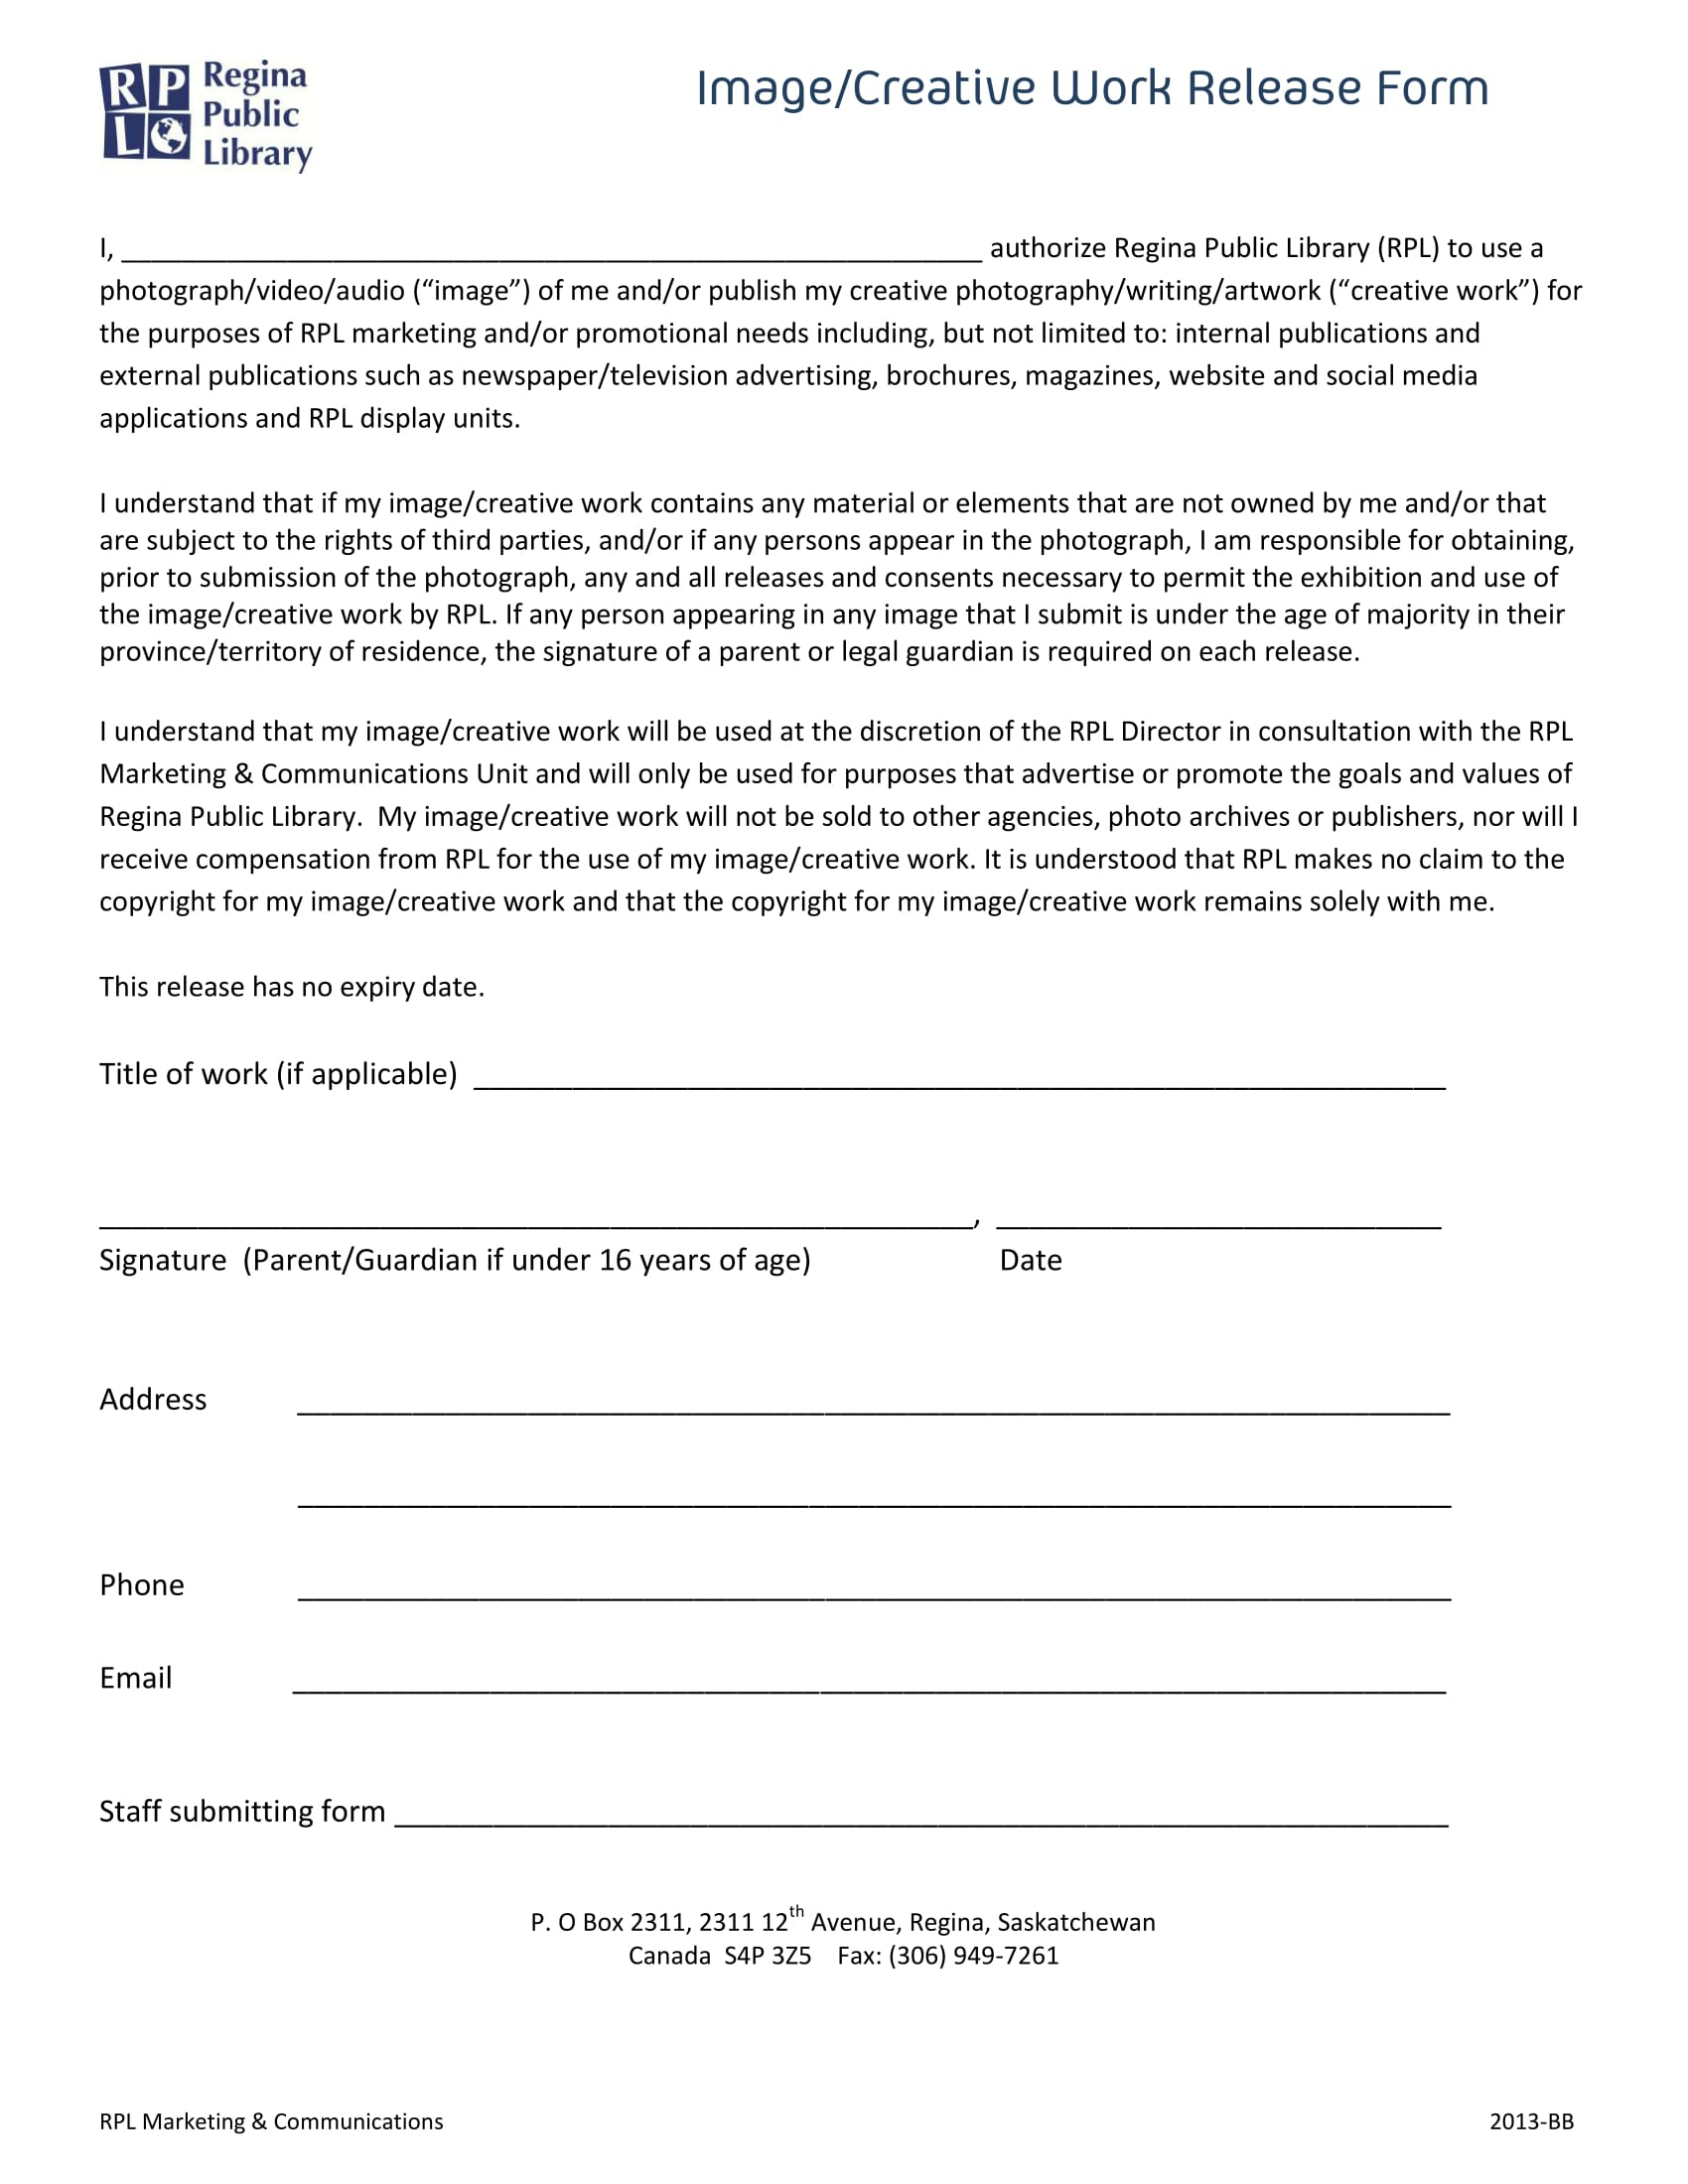 image creative work release form 1